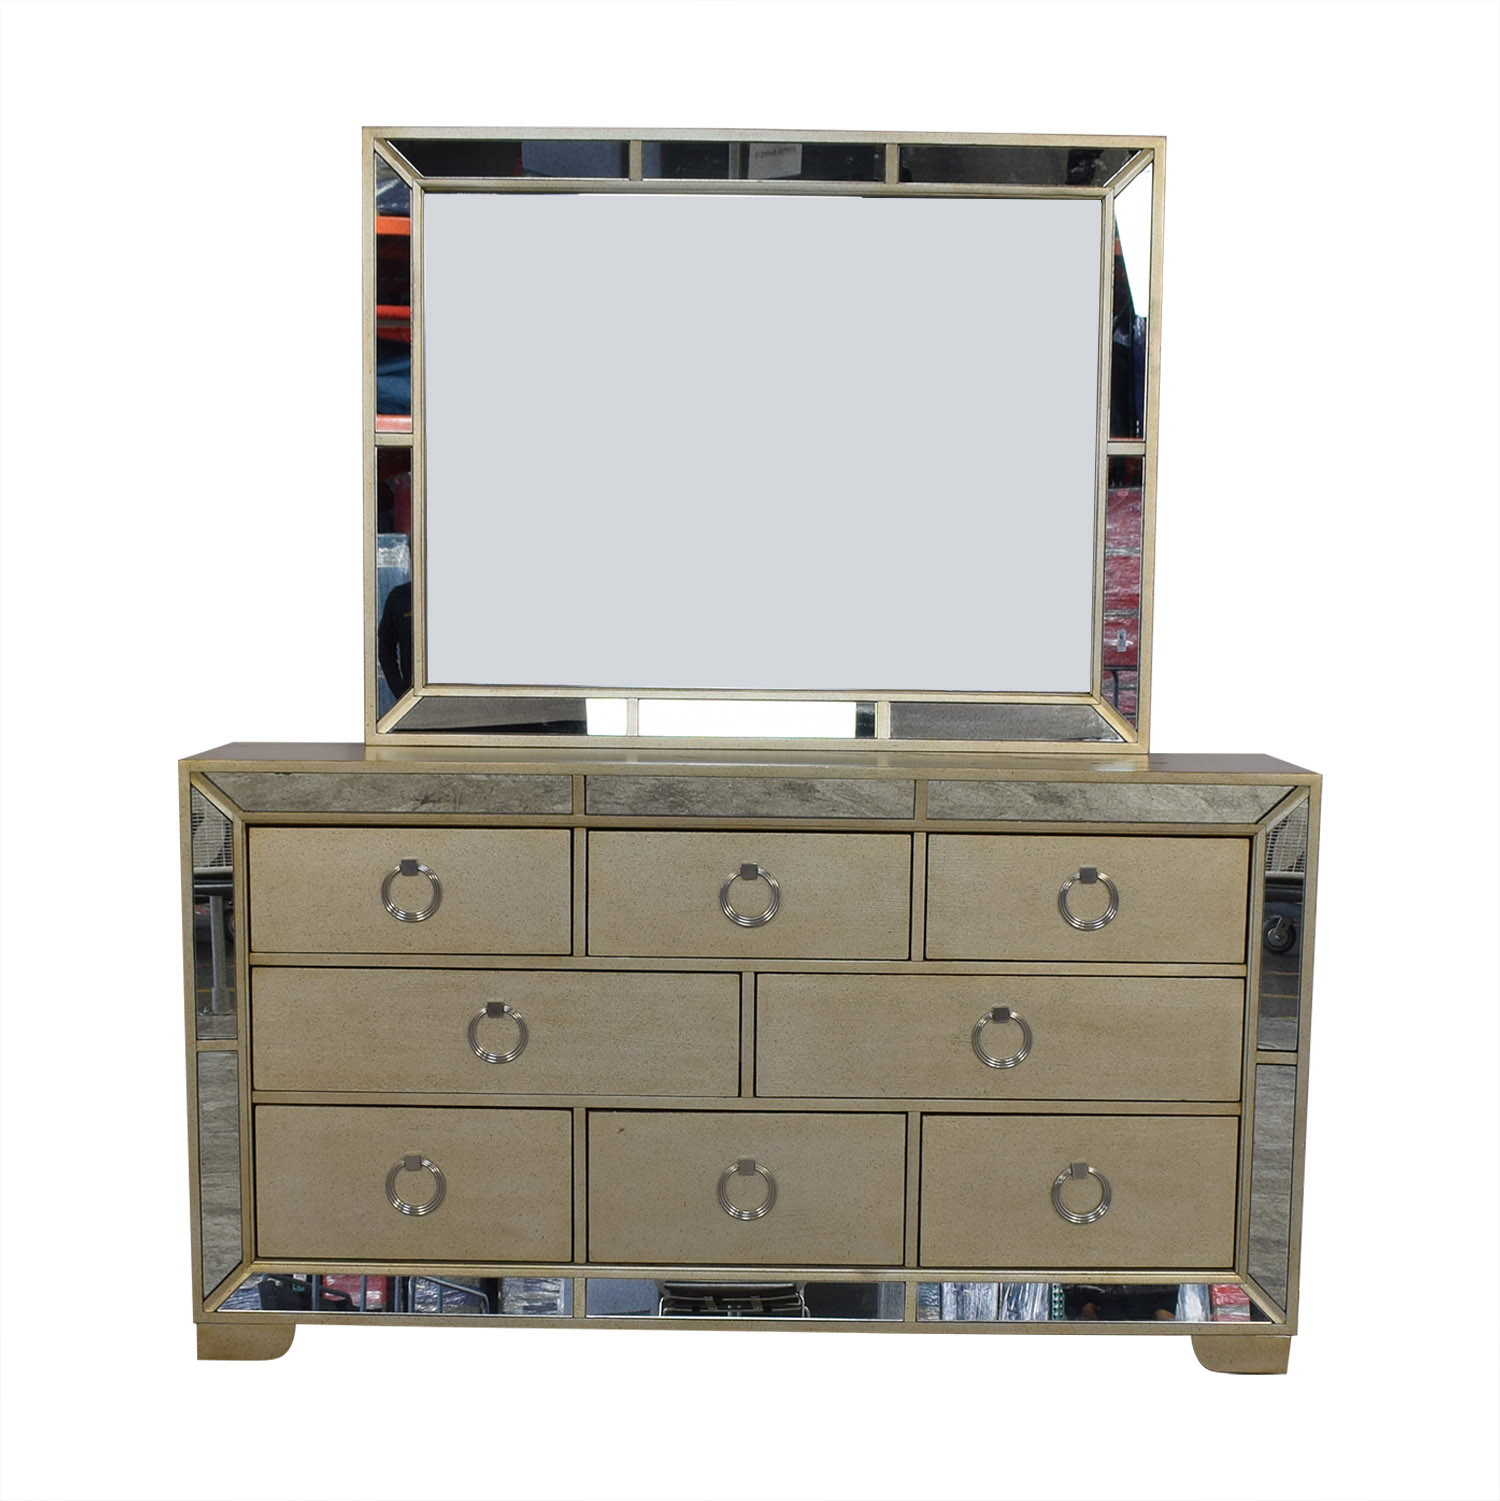 Macy's Ailey Collection Dresser with Mirror / Dressers